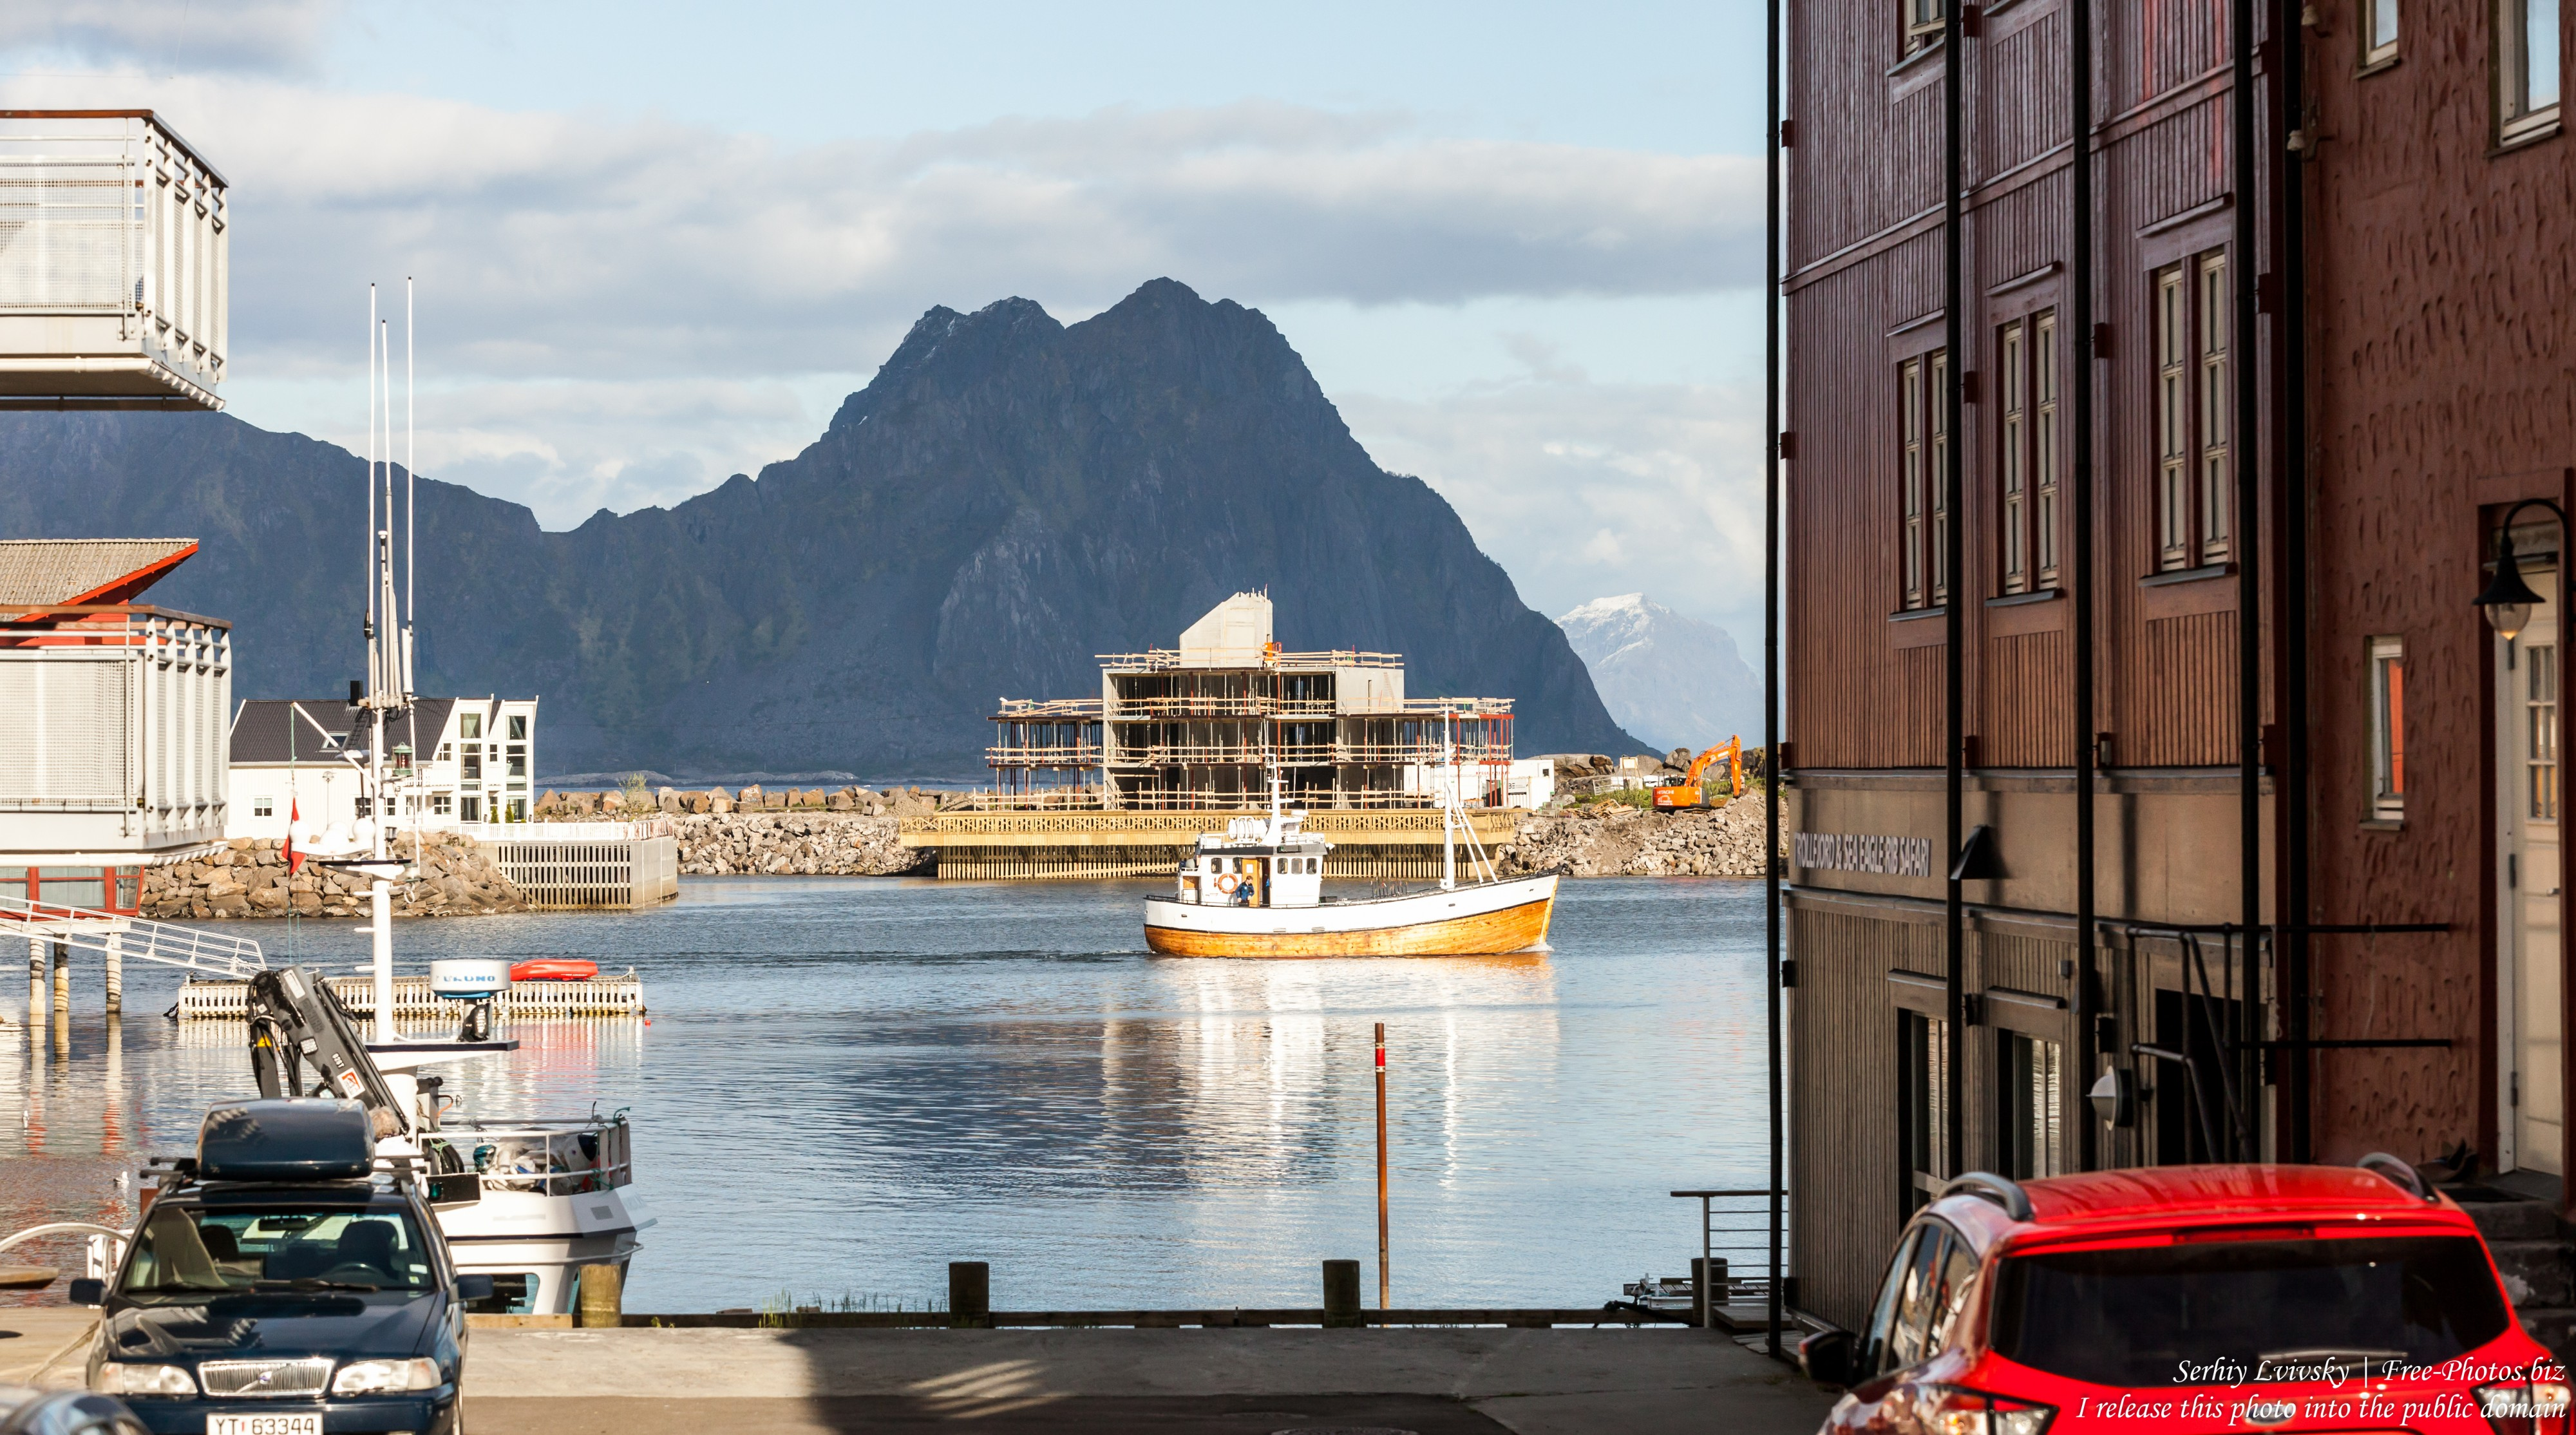 Svolvaer, Lofoten, Norway photographed in June 2018 by Serhiy Lvivsky, picture 33